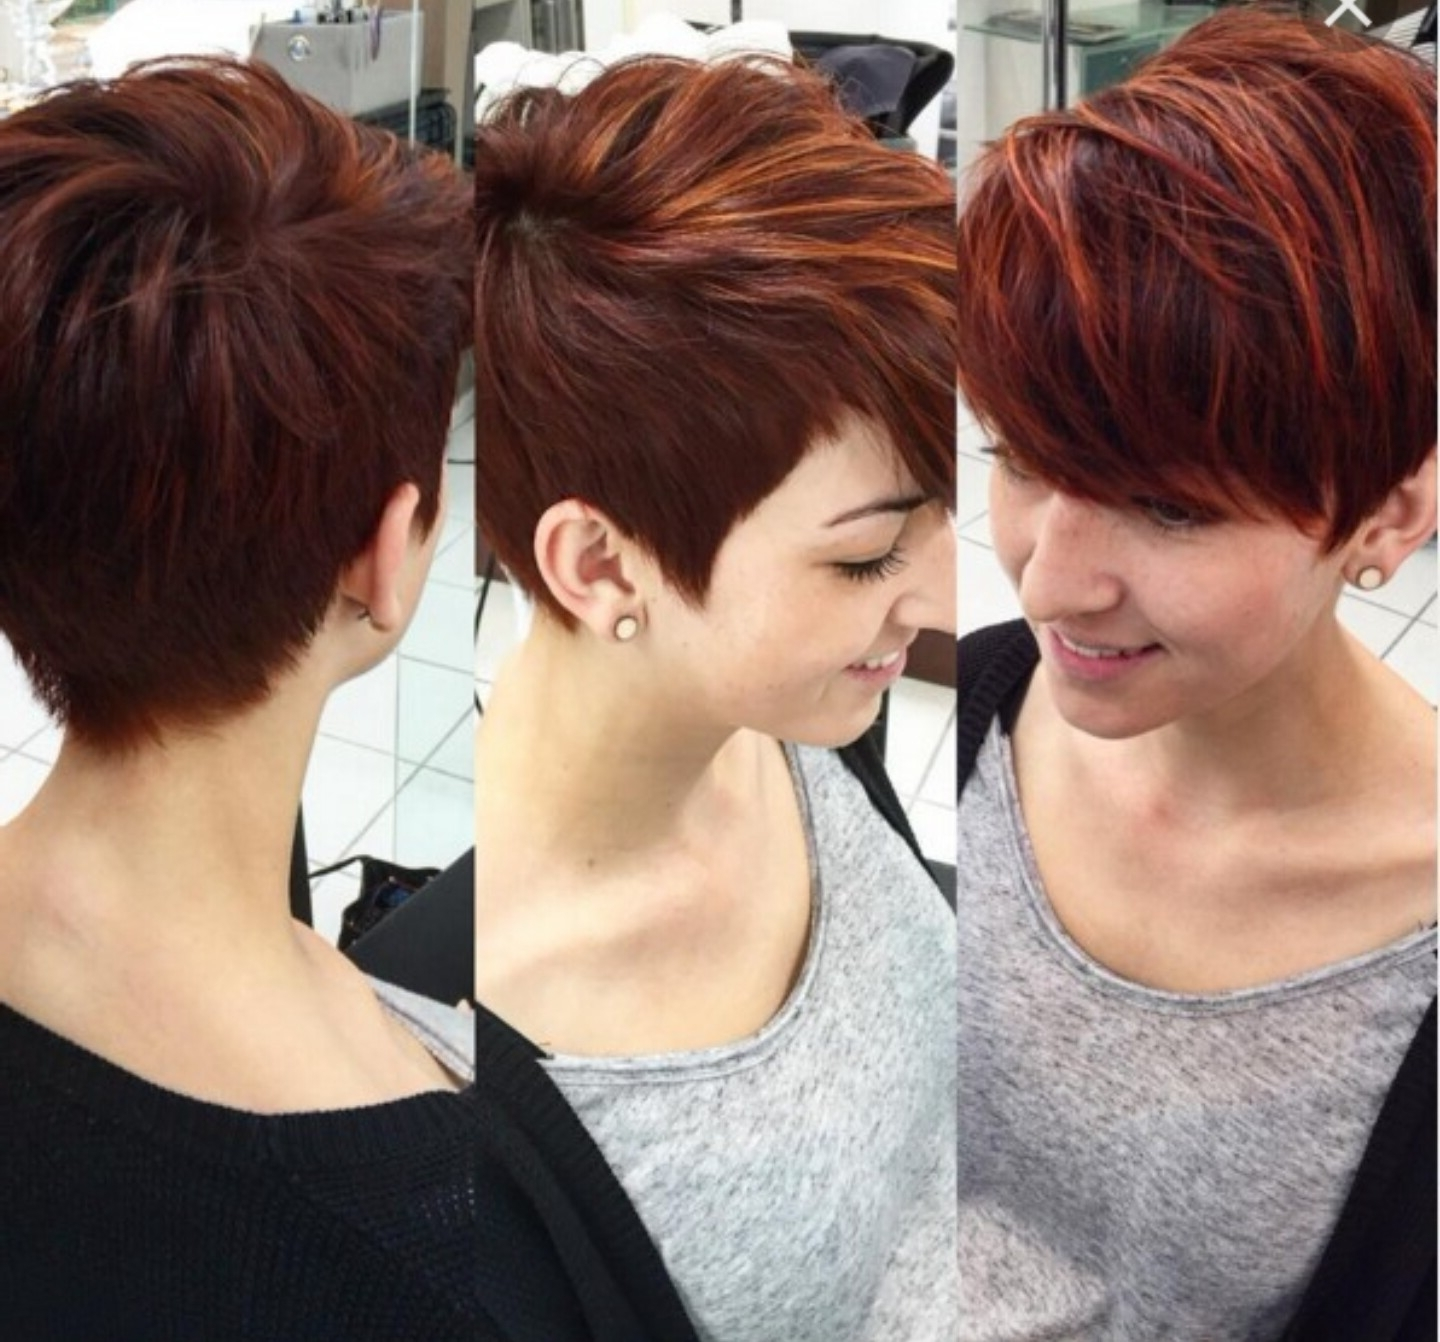 Caramel Colored Pixie With Long Side Bangs | Hair | Pinterest For Newest Pixie Hairstyles With Long Bangs (View 10 of 15)